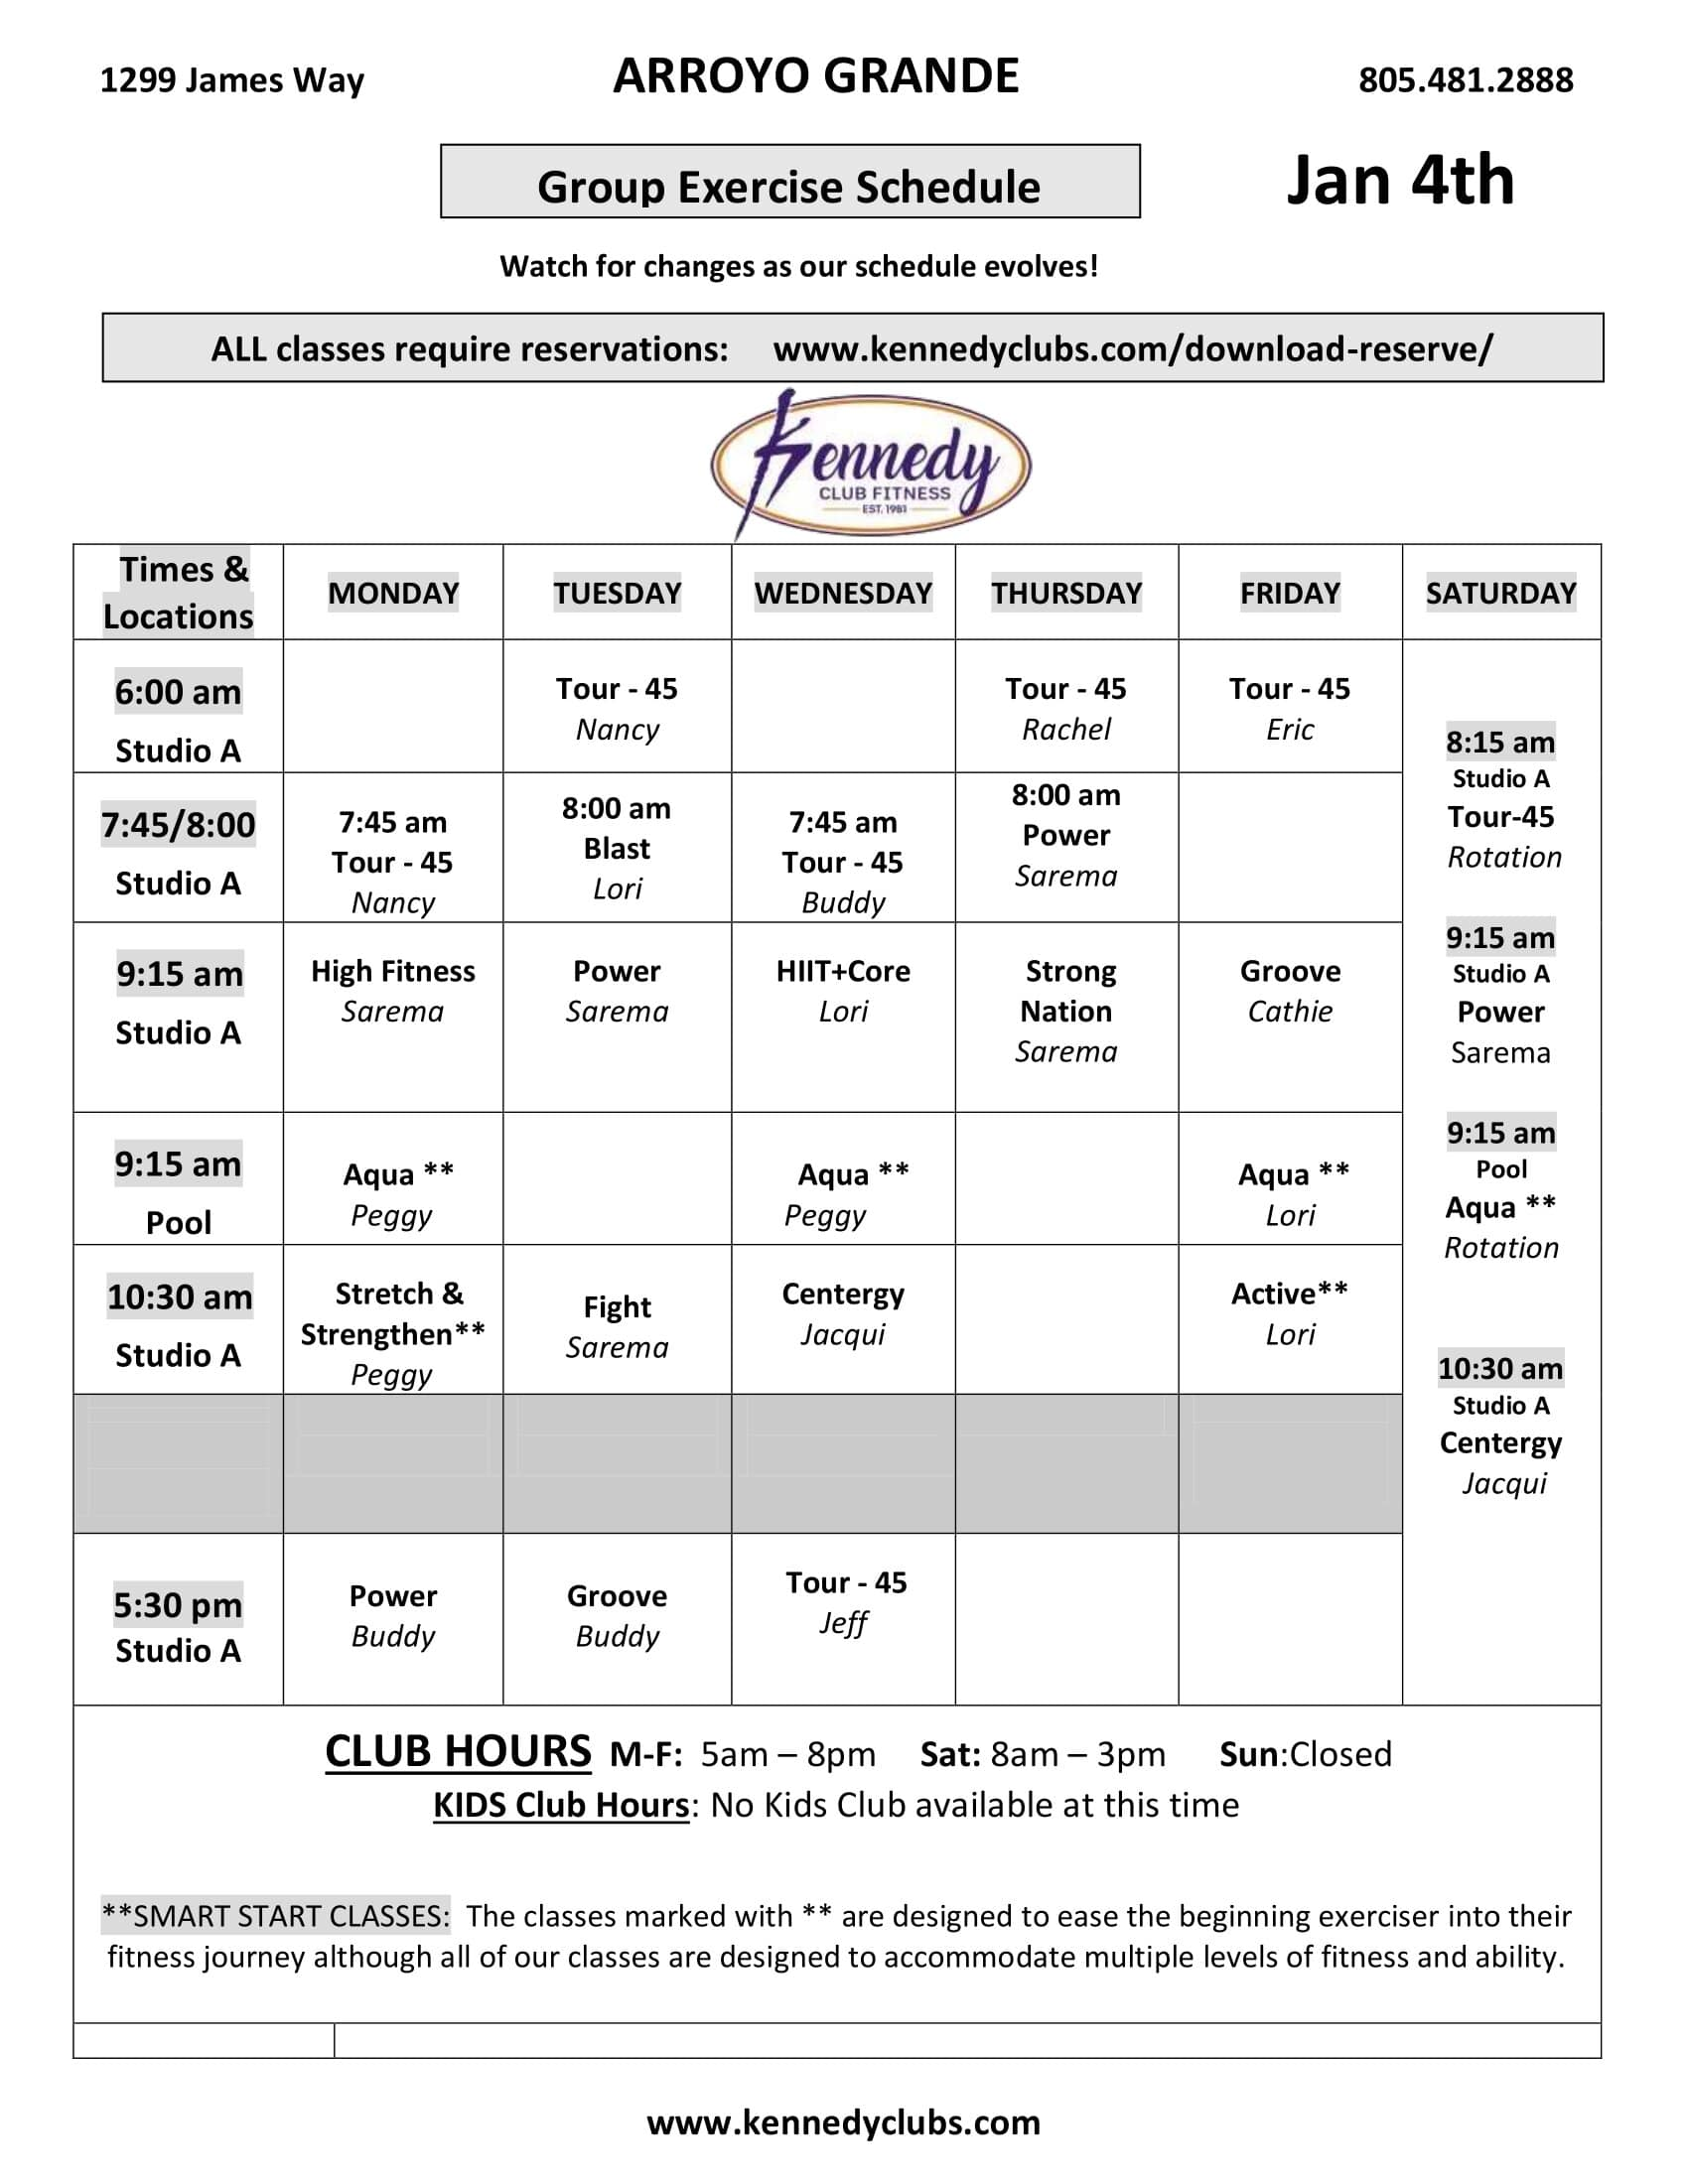 Kennedy Club Fitness Arroyo Grande Group Exercise Schedule 01 04 2021